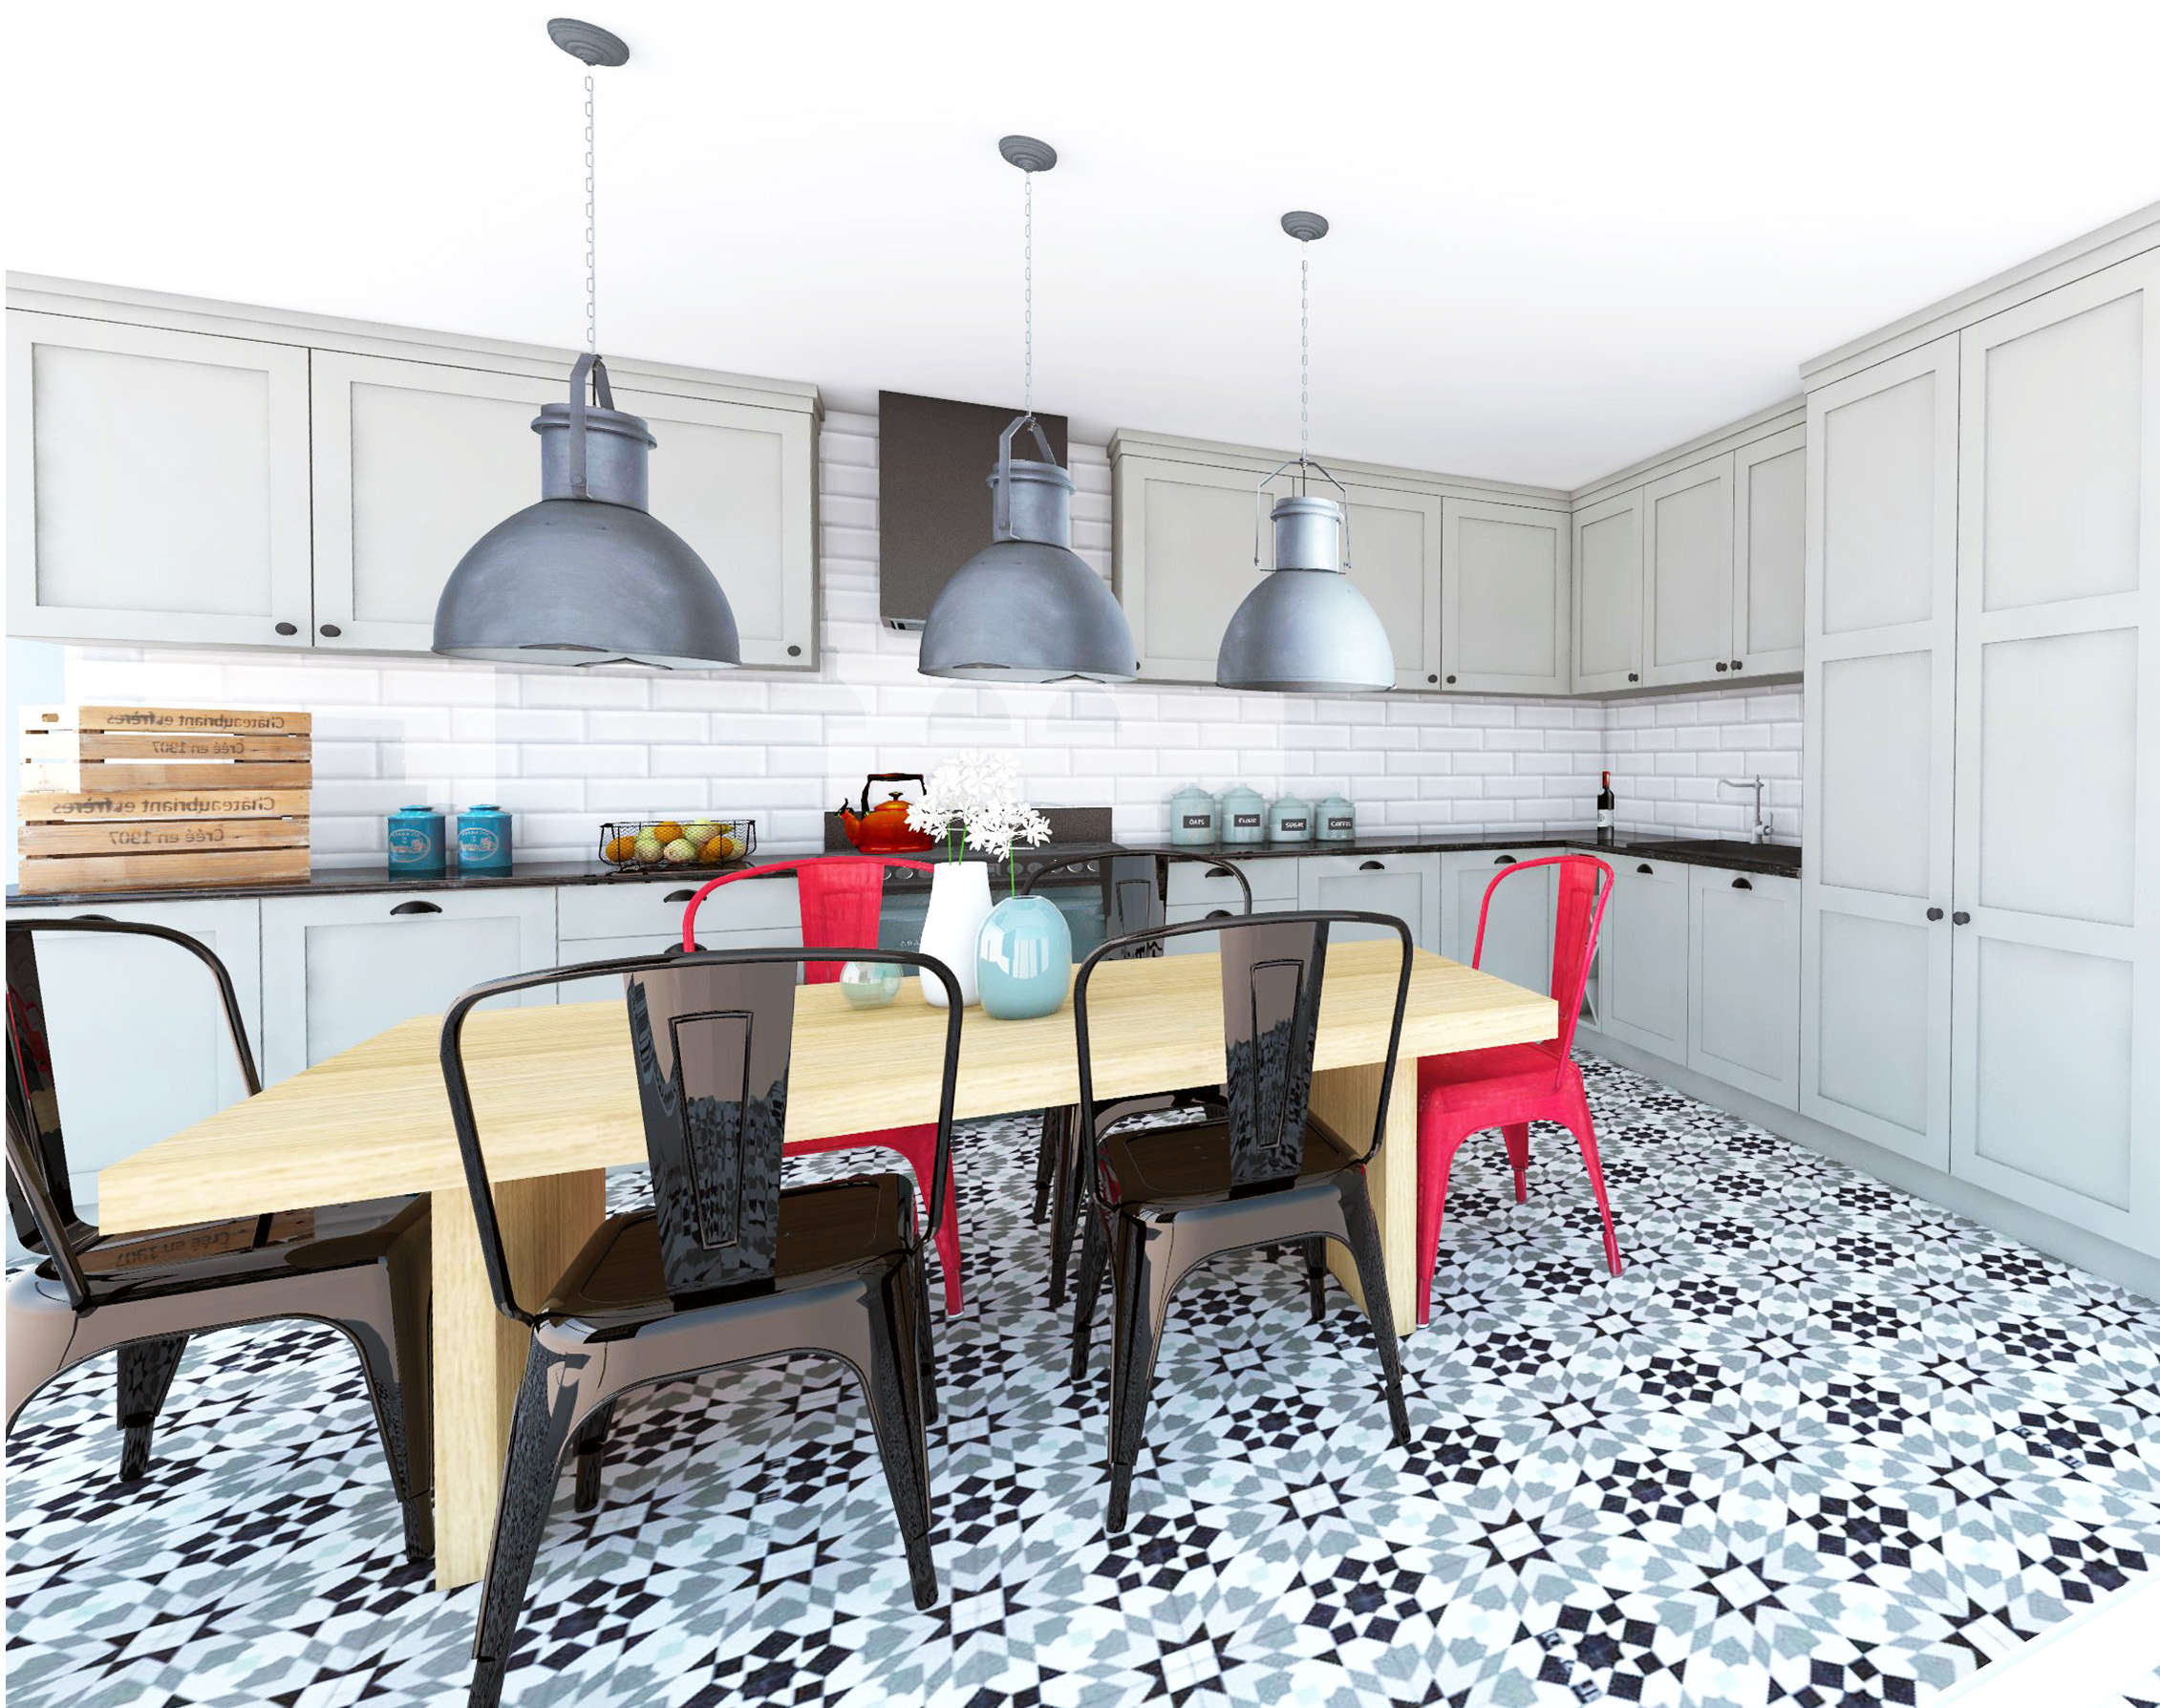 Brixton_kitchen_4